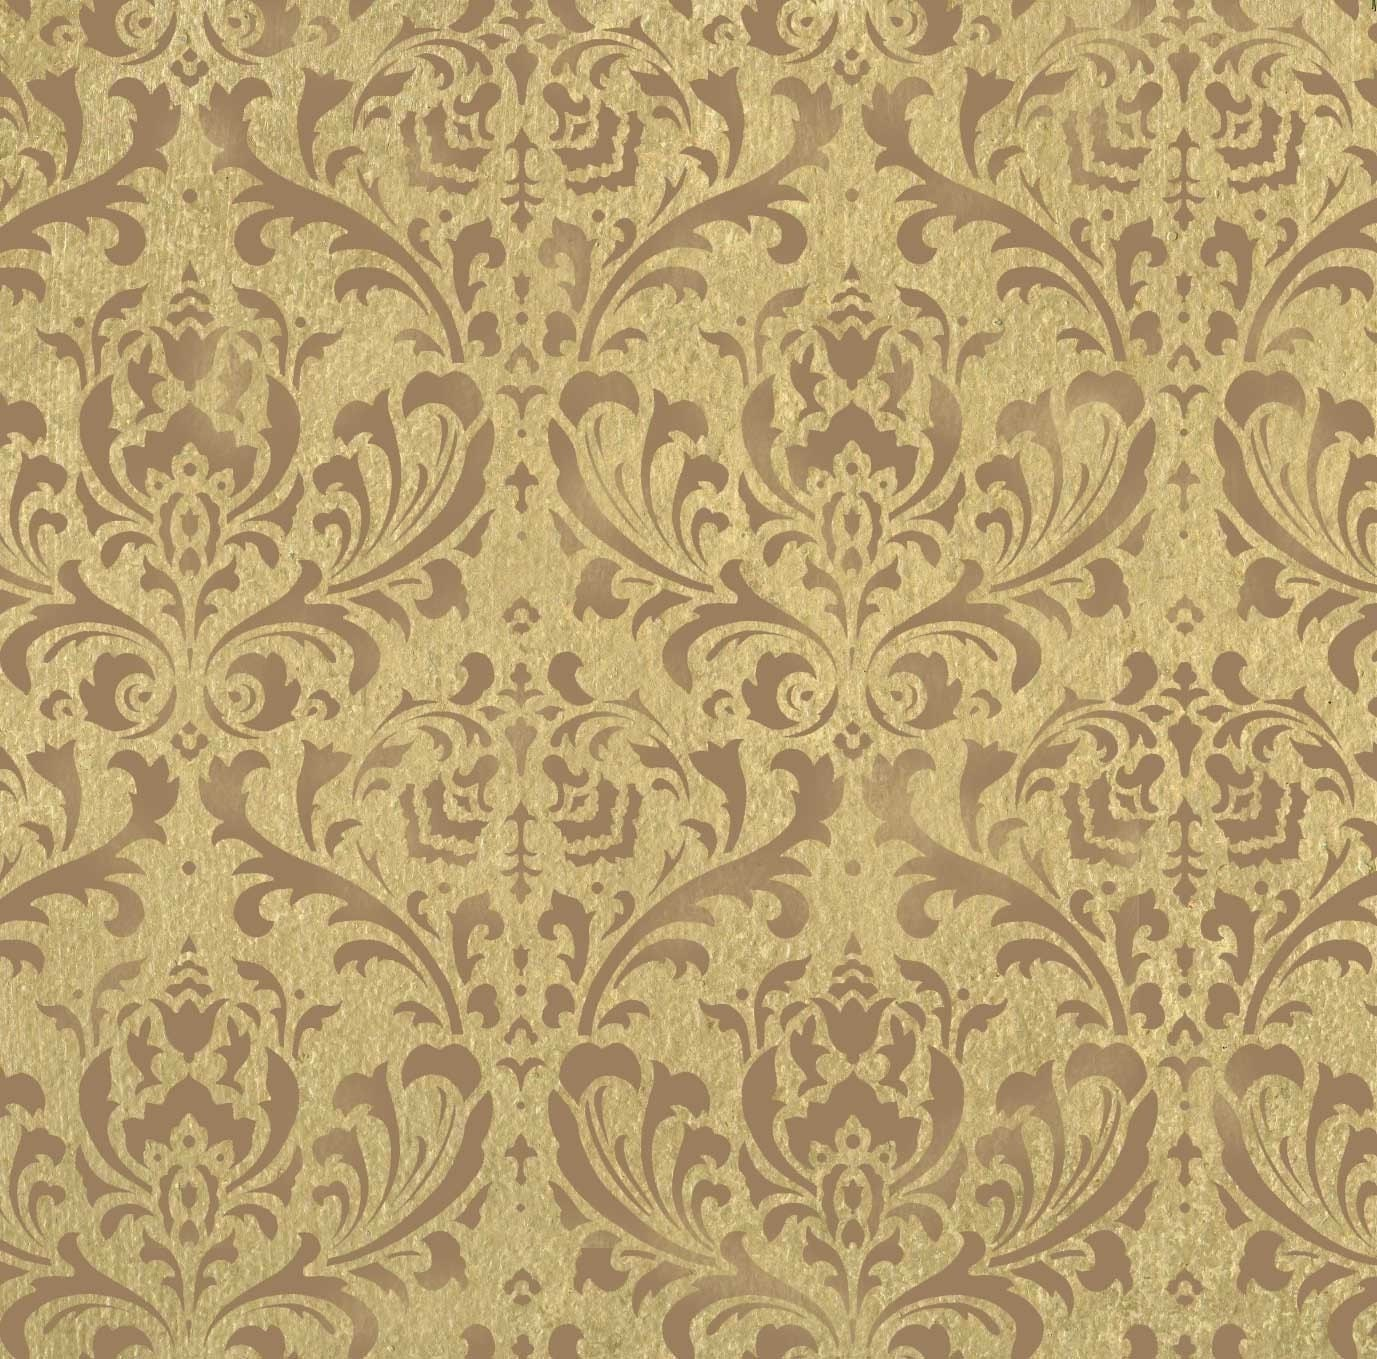 Wallpaper Wall Stencils : Wall stencil damask brocade pattern by